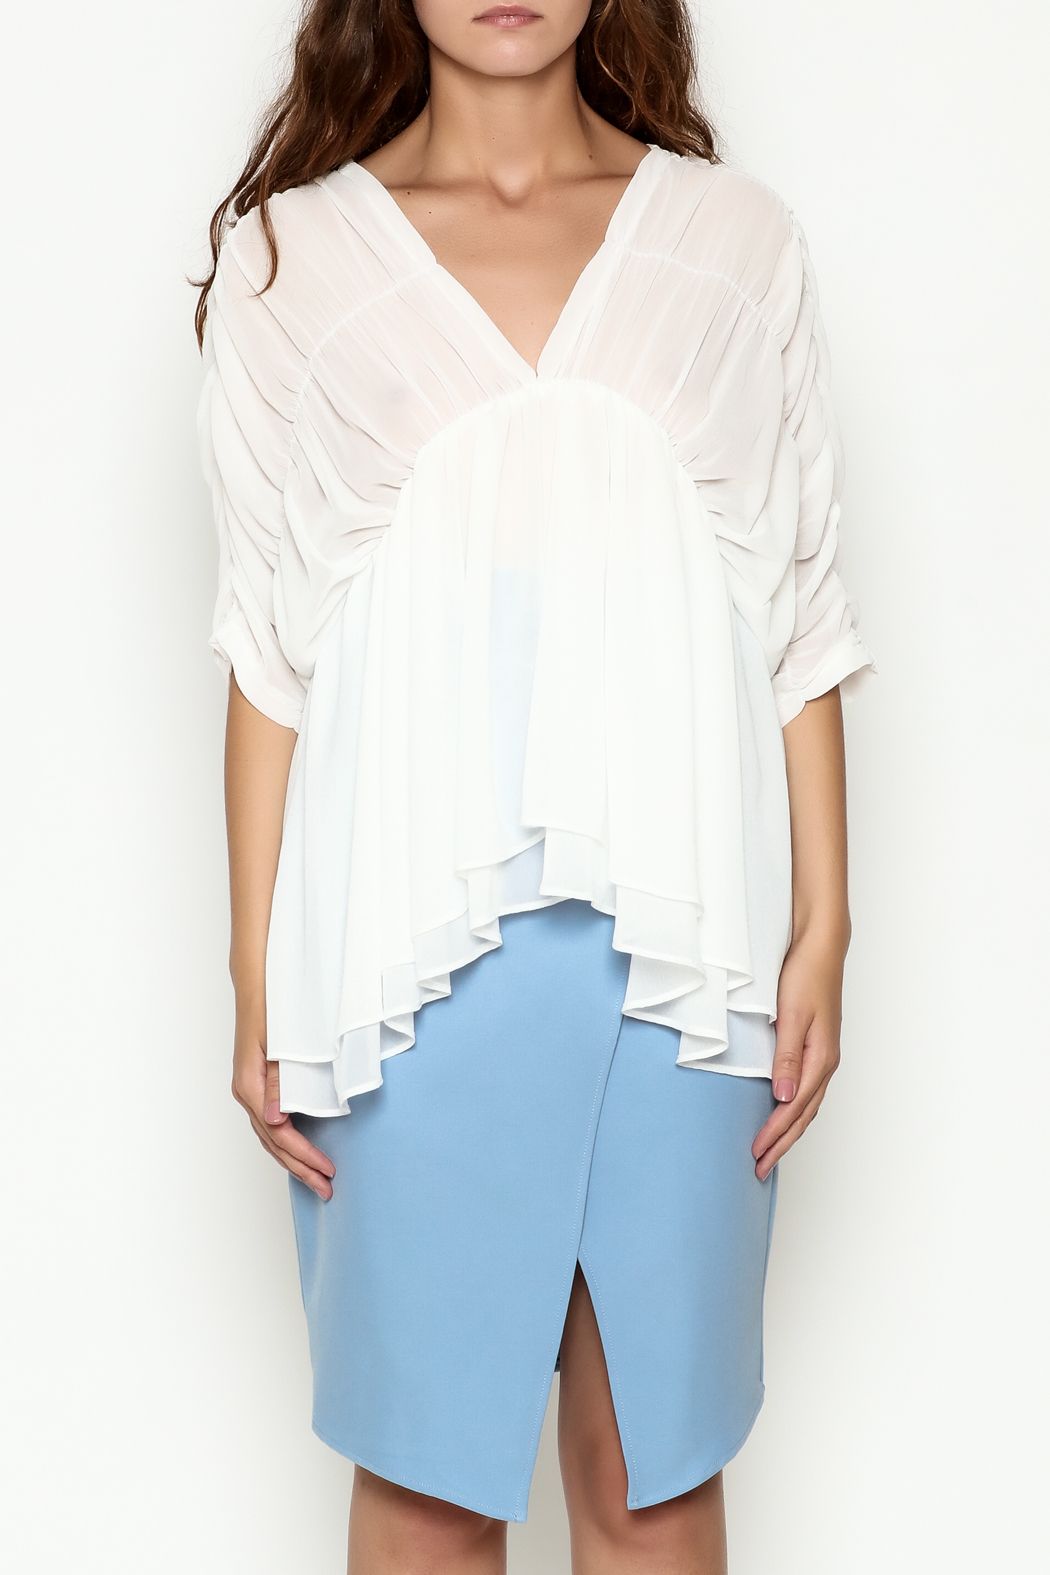 THINK CLOSET Flowy Dream Blouse - Front Full Image